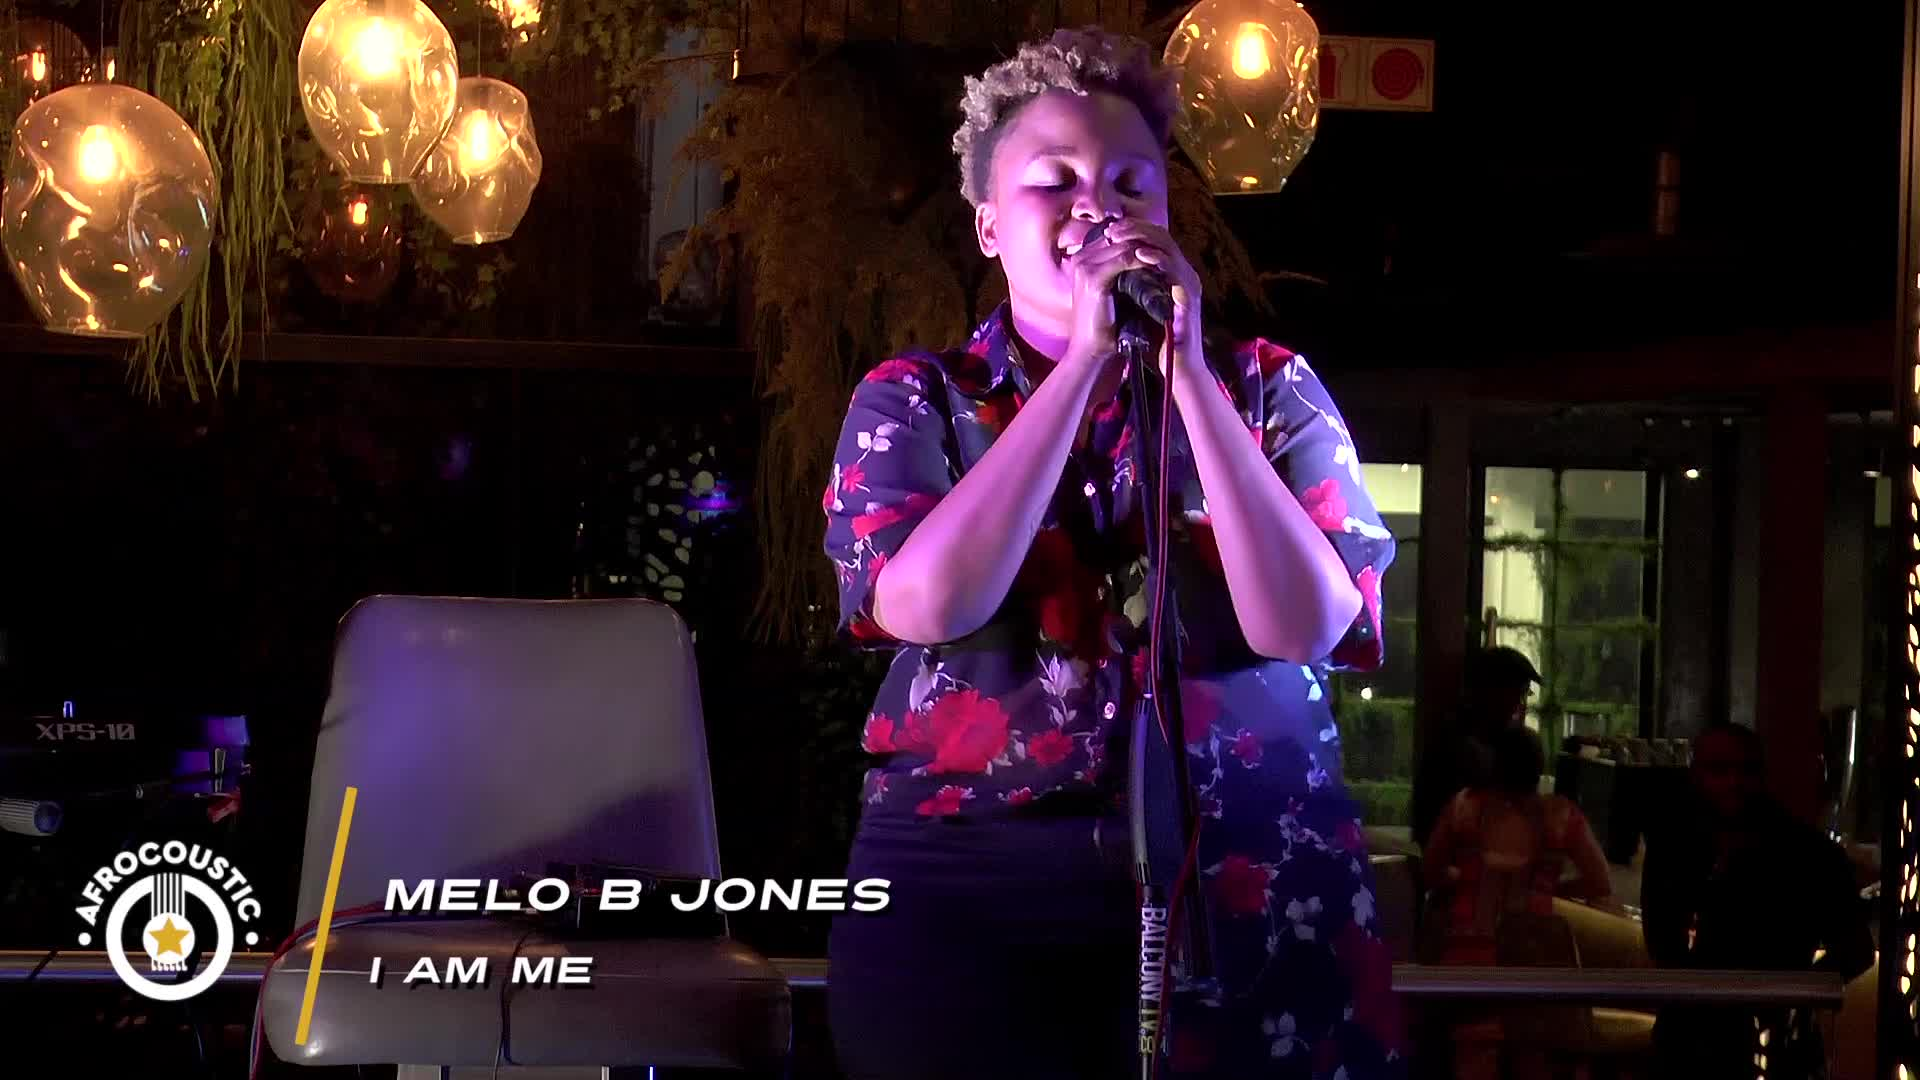 Afrocoustic - Melo B Jones - I Am Me